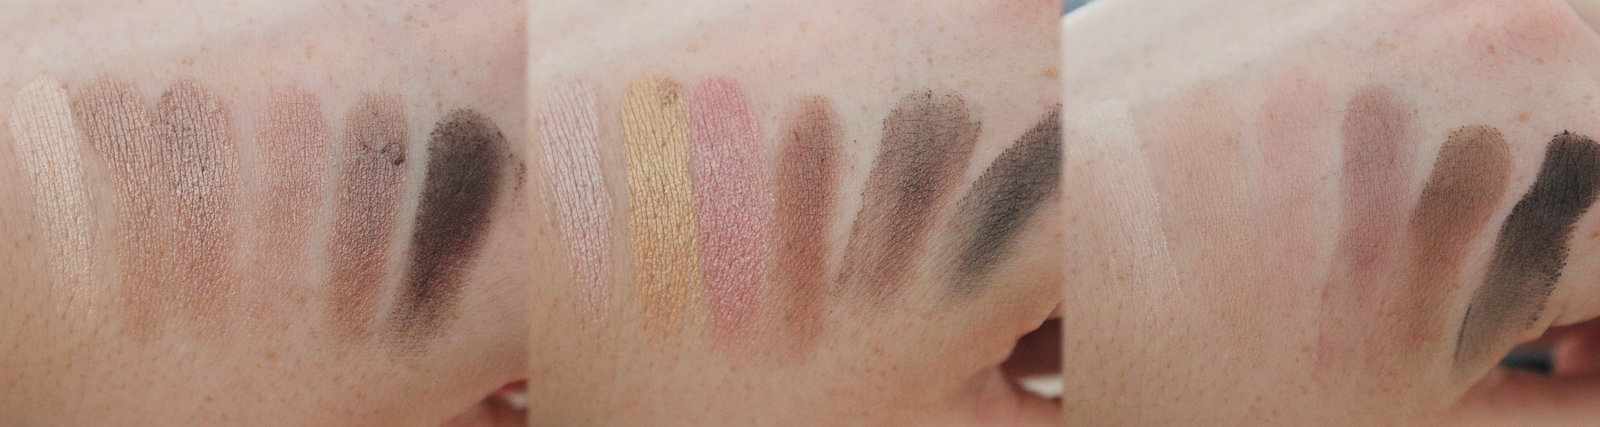 make-up-revoluton-salvation-palette-swatches